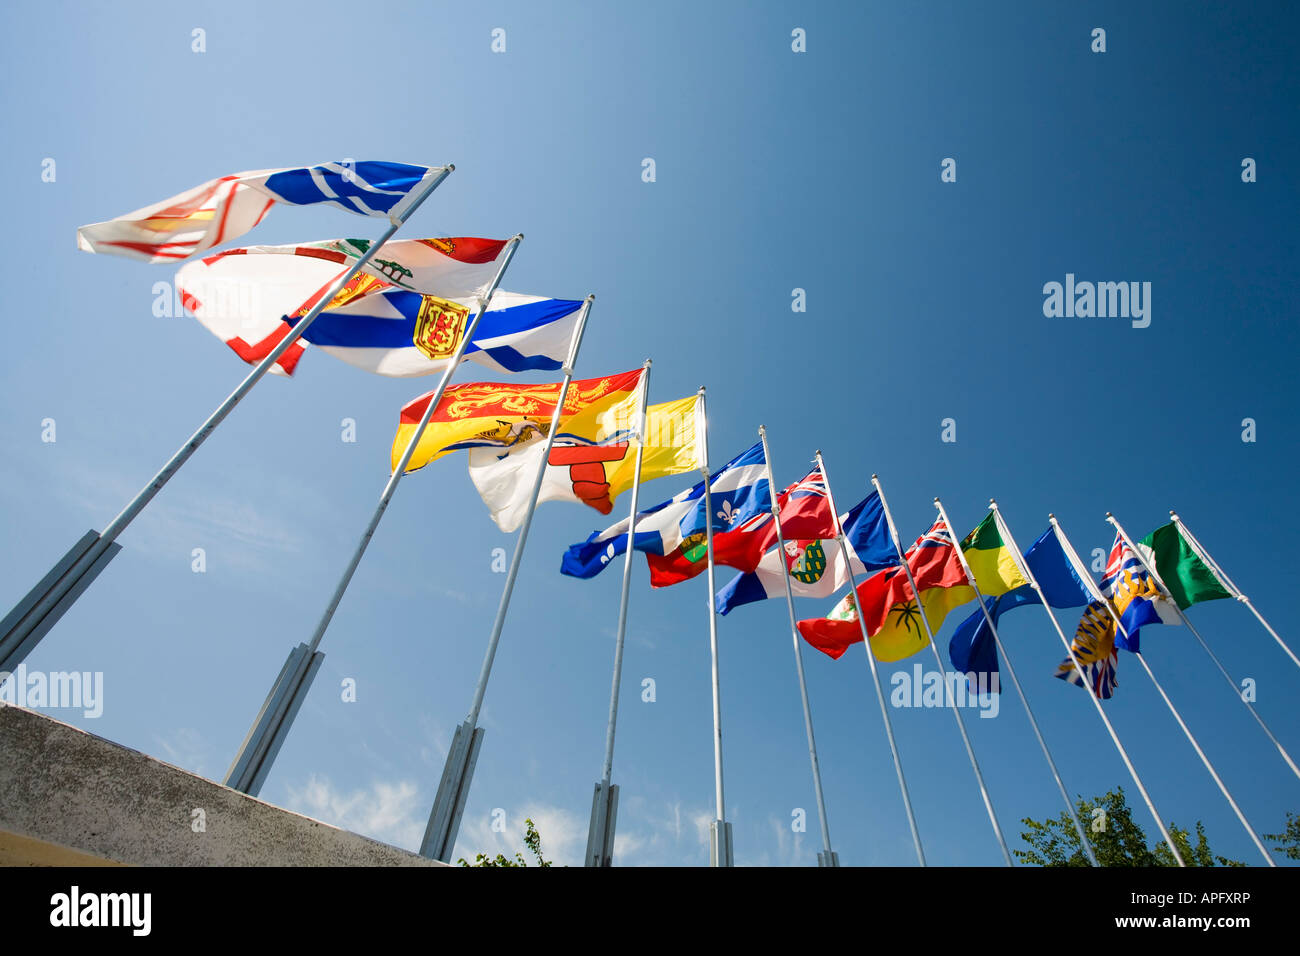 Flags of Canadian provinces - Stock Image